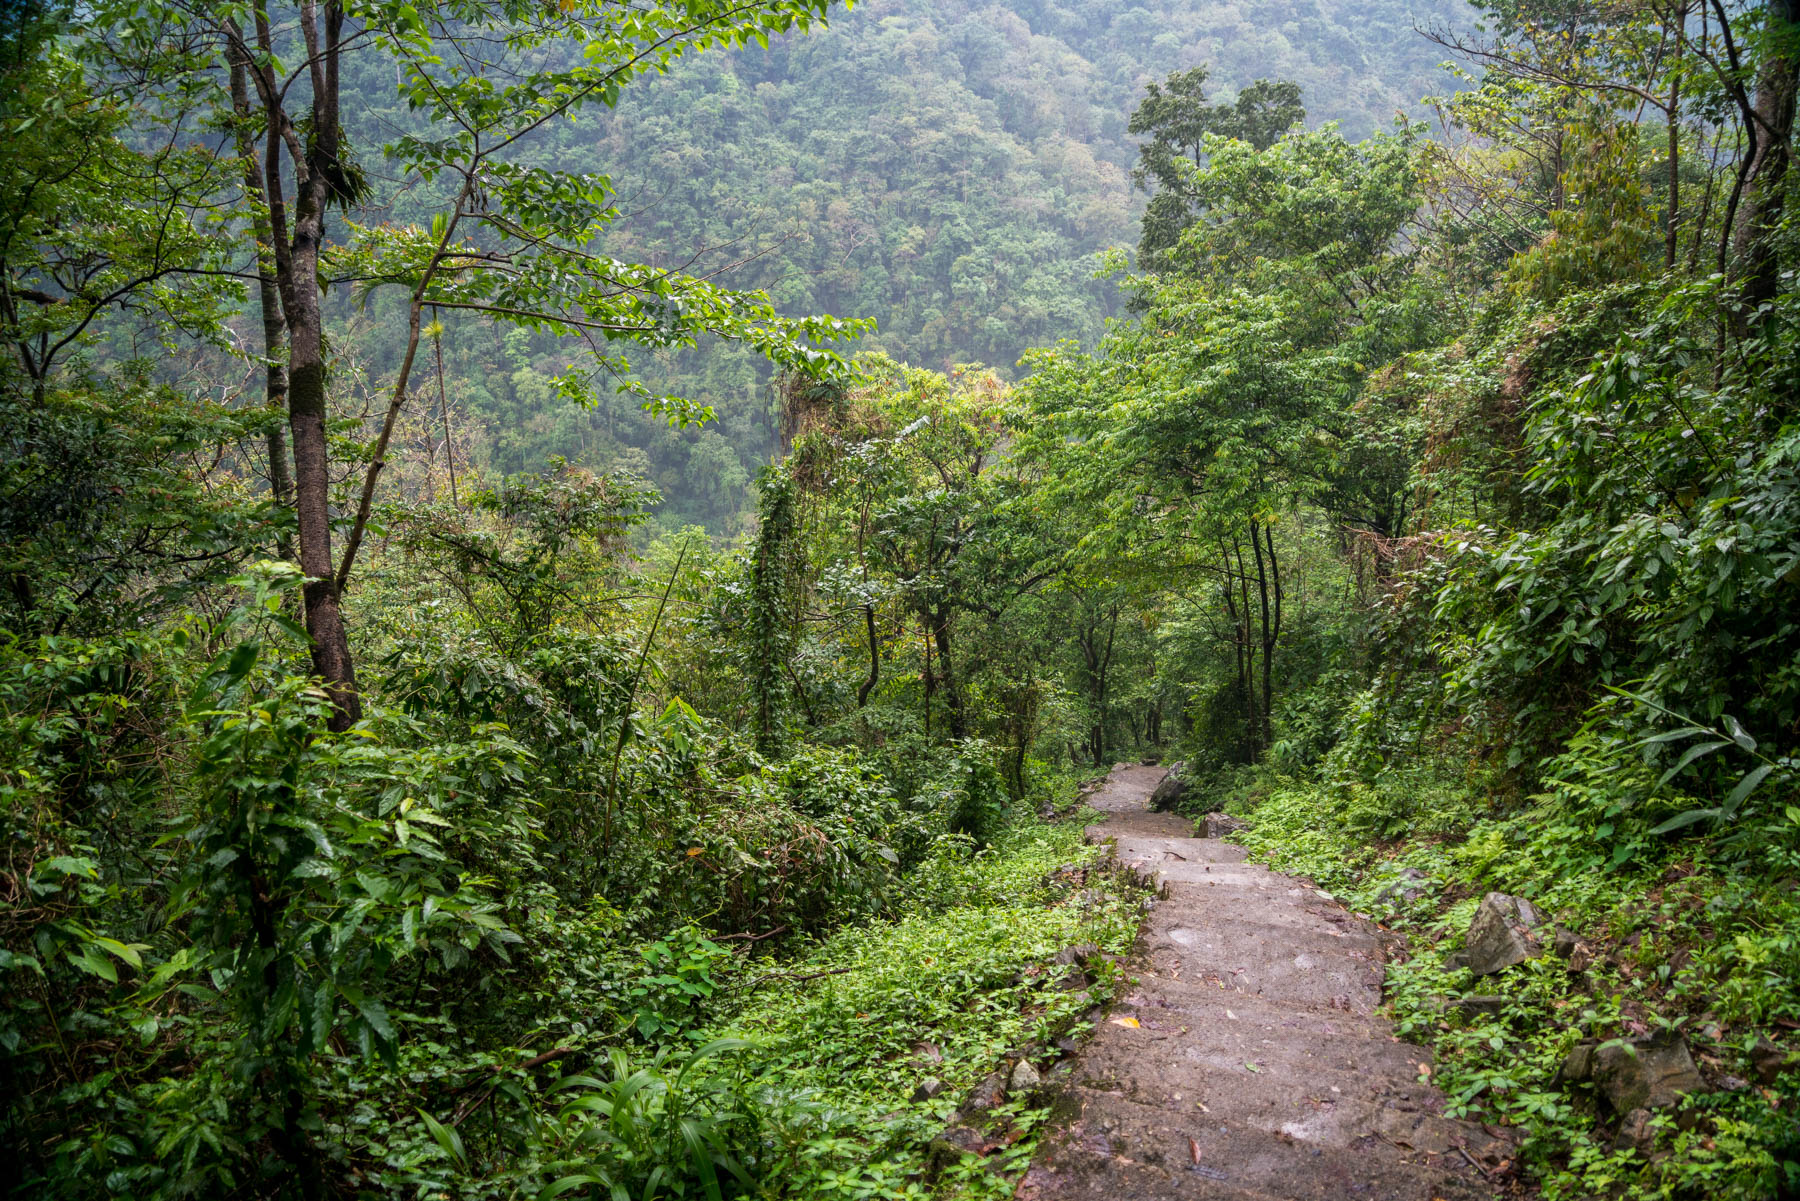 Photo essay of Nongriat and the living root bridges of Meghalaya, India - The winding path down to Nongriat - Lost With Purpose